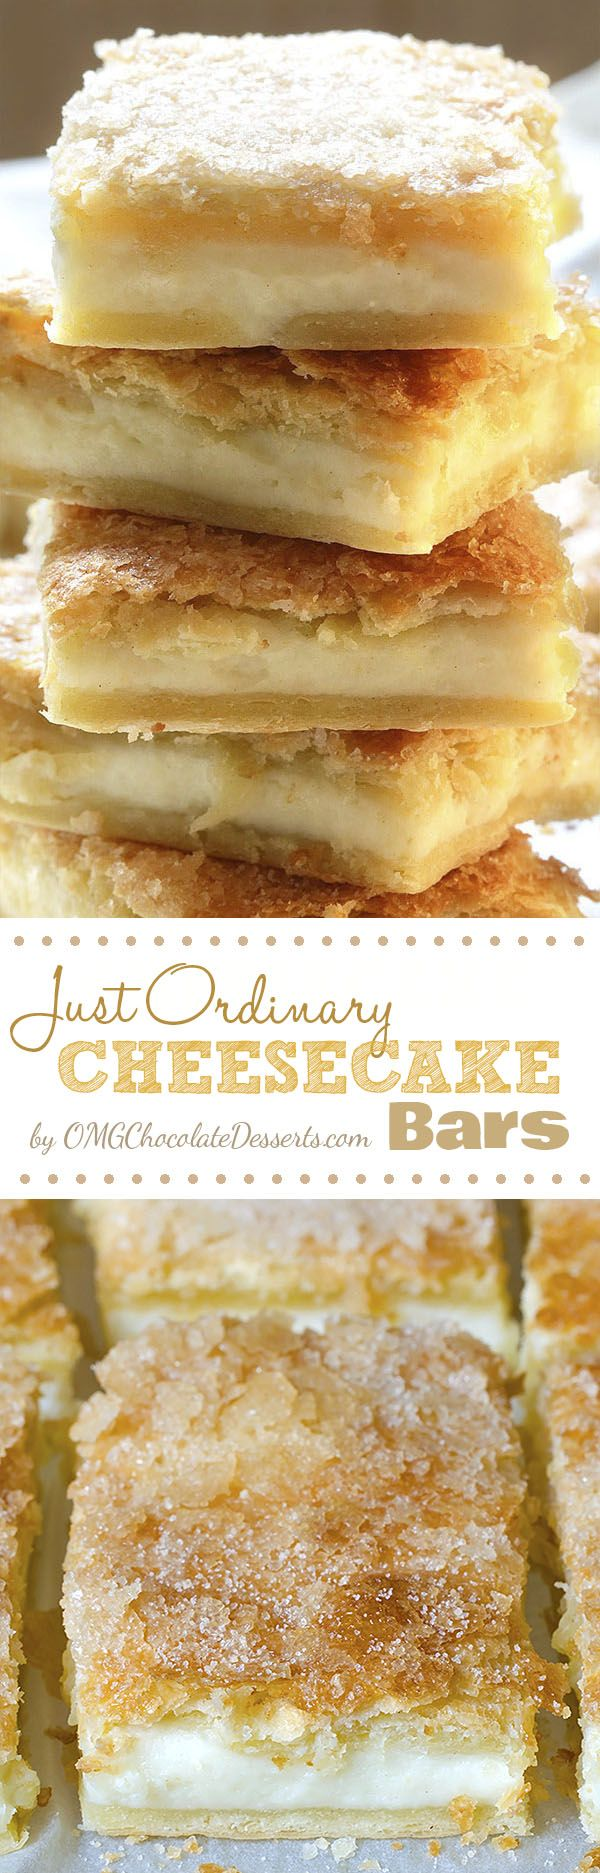 A beautiful combination of crescent rolls and cream cheese with just a little effort will become a recipe you will surely gladly come back to - Sopapilla Cheesecake Bars.